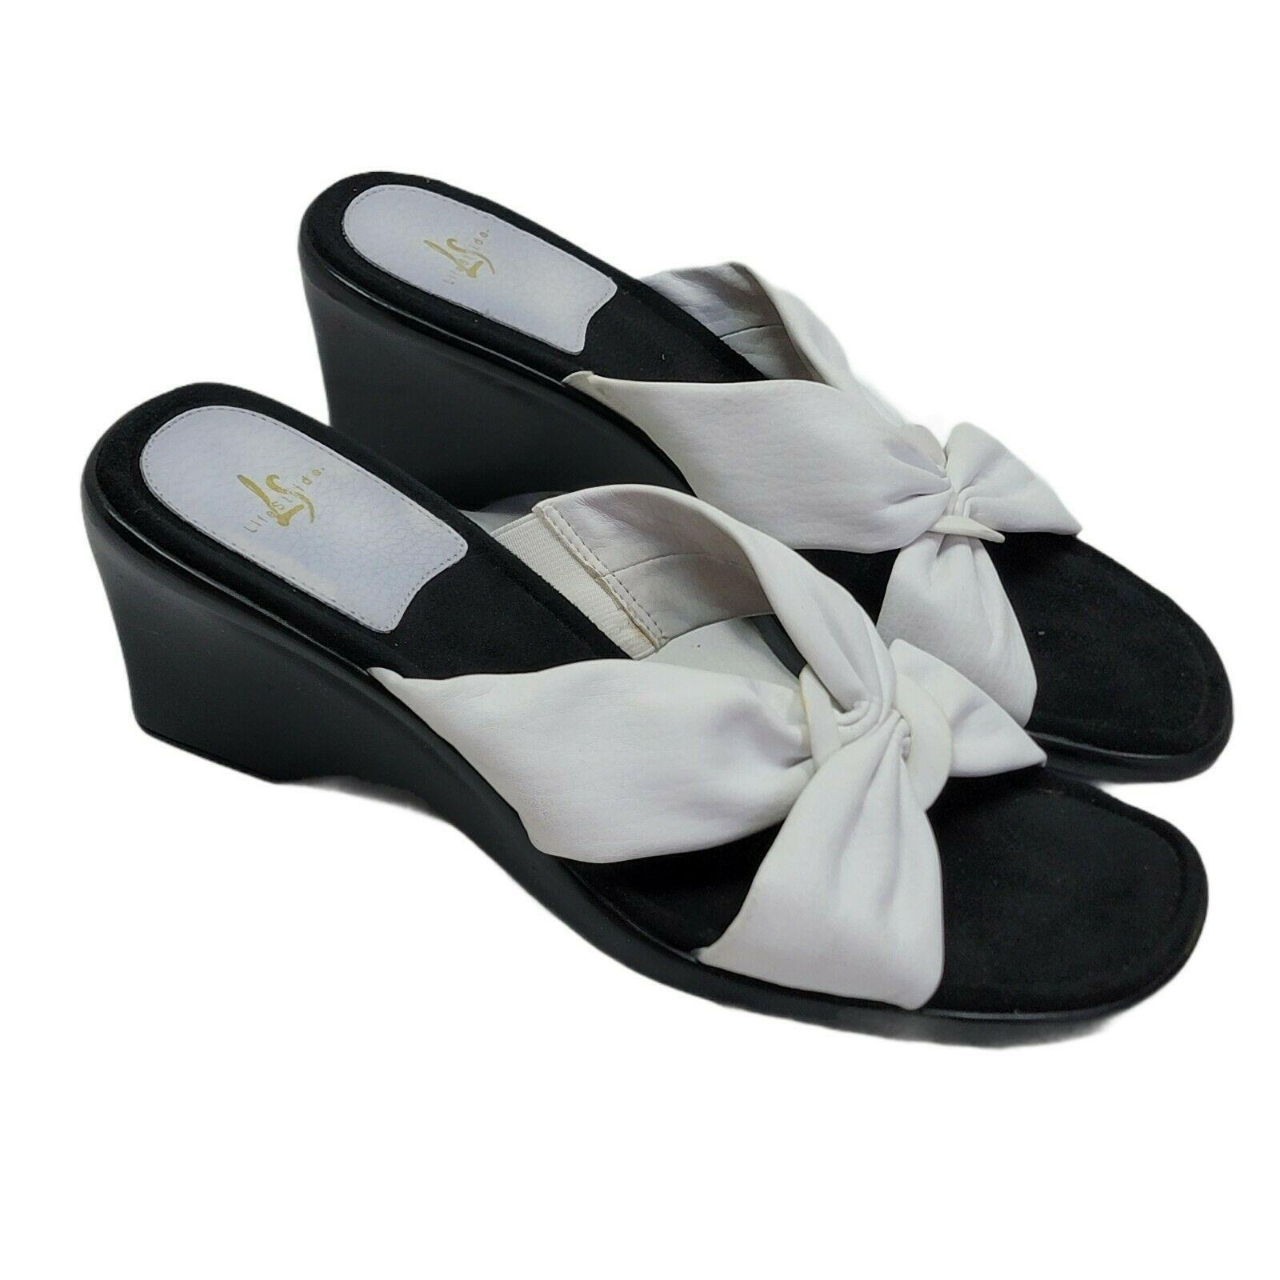 Product Image 1 - Brand: LifeStride Item: Mules Size: There is